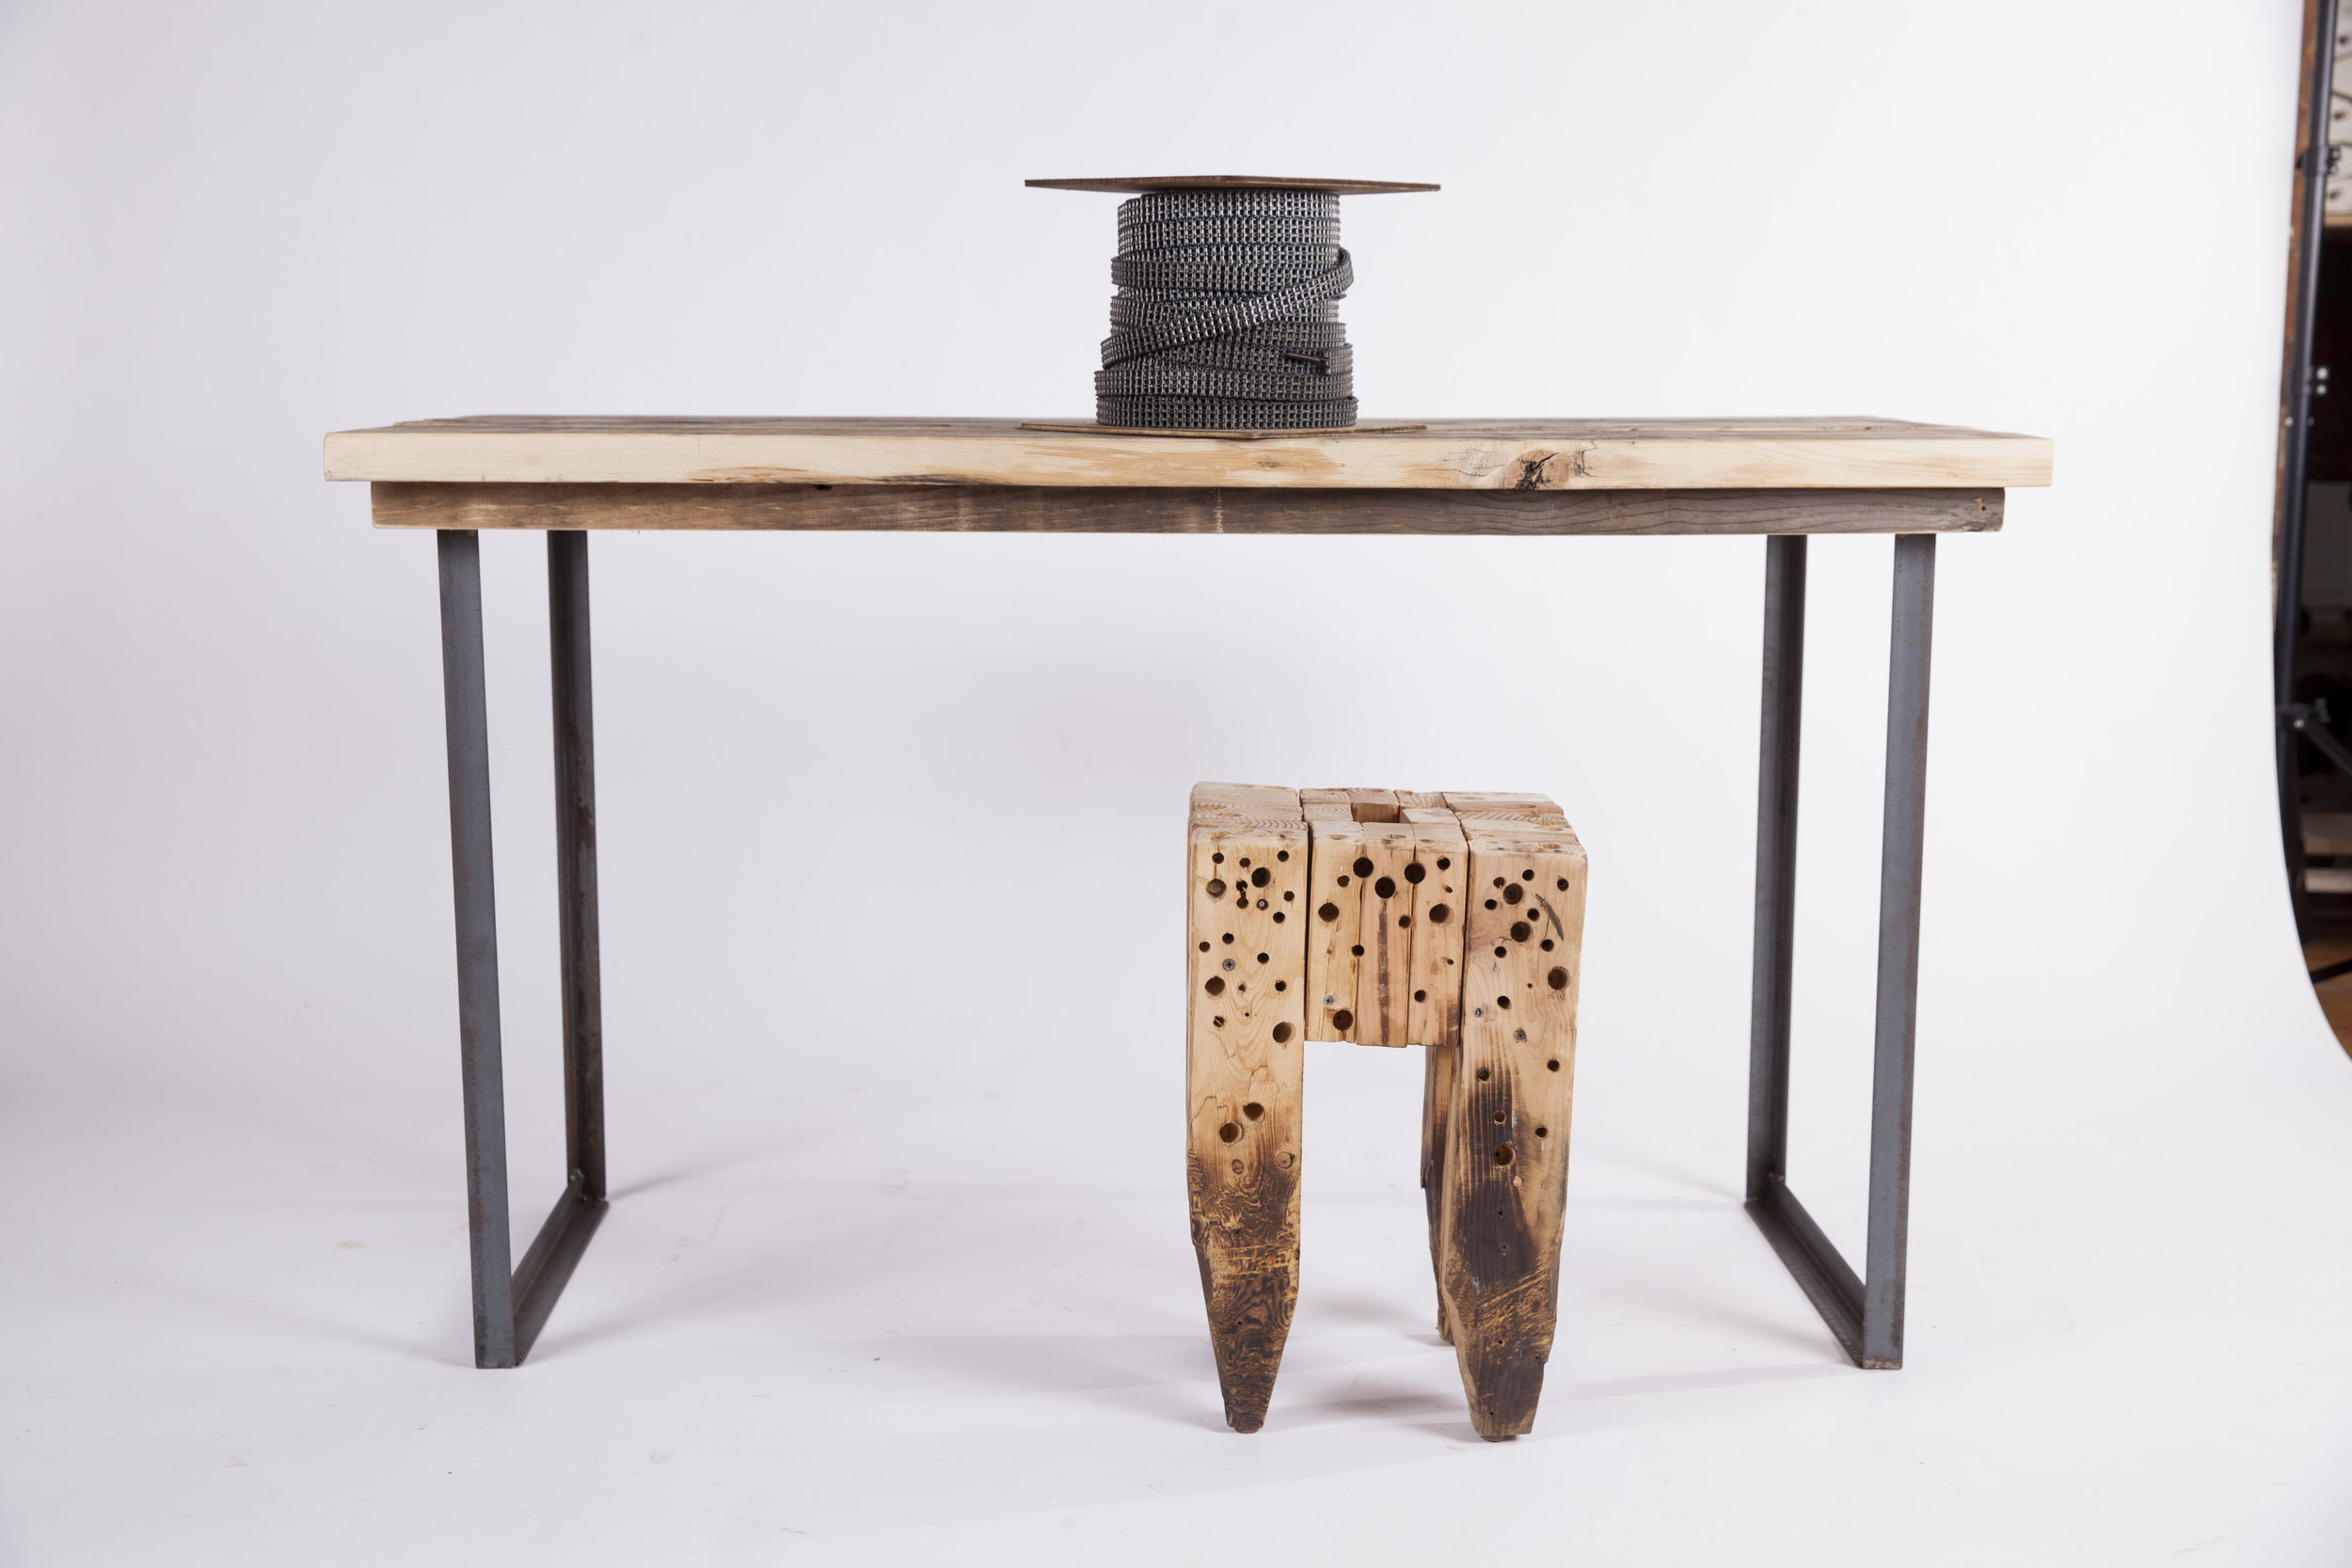 table with cheese stoolsIMG_8121.jpg